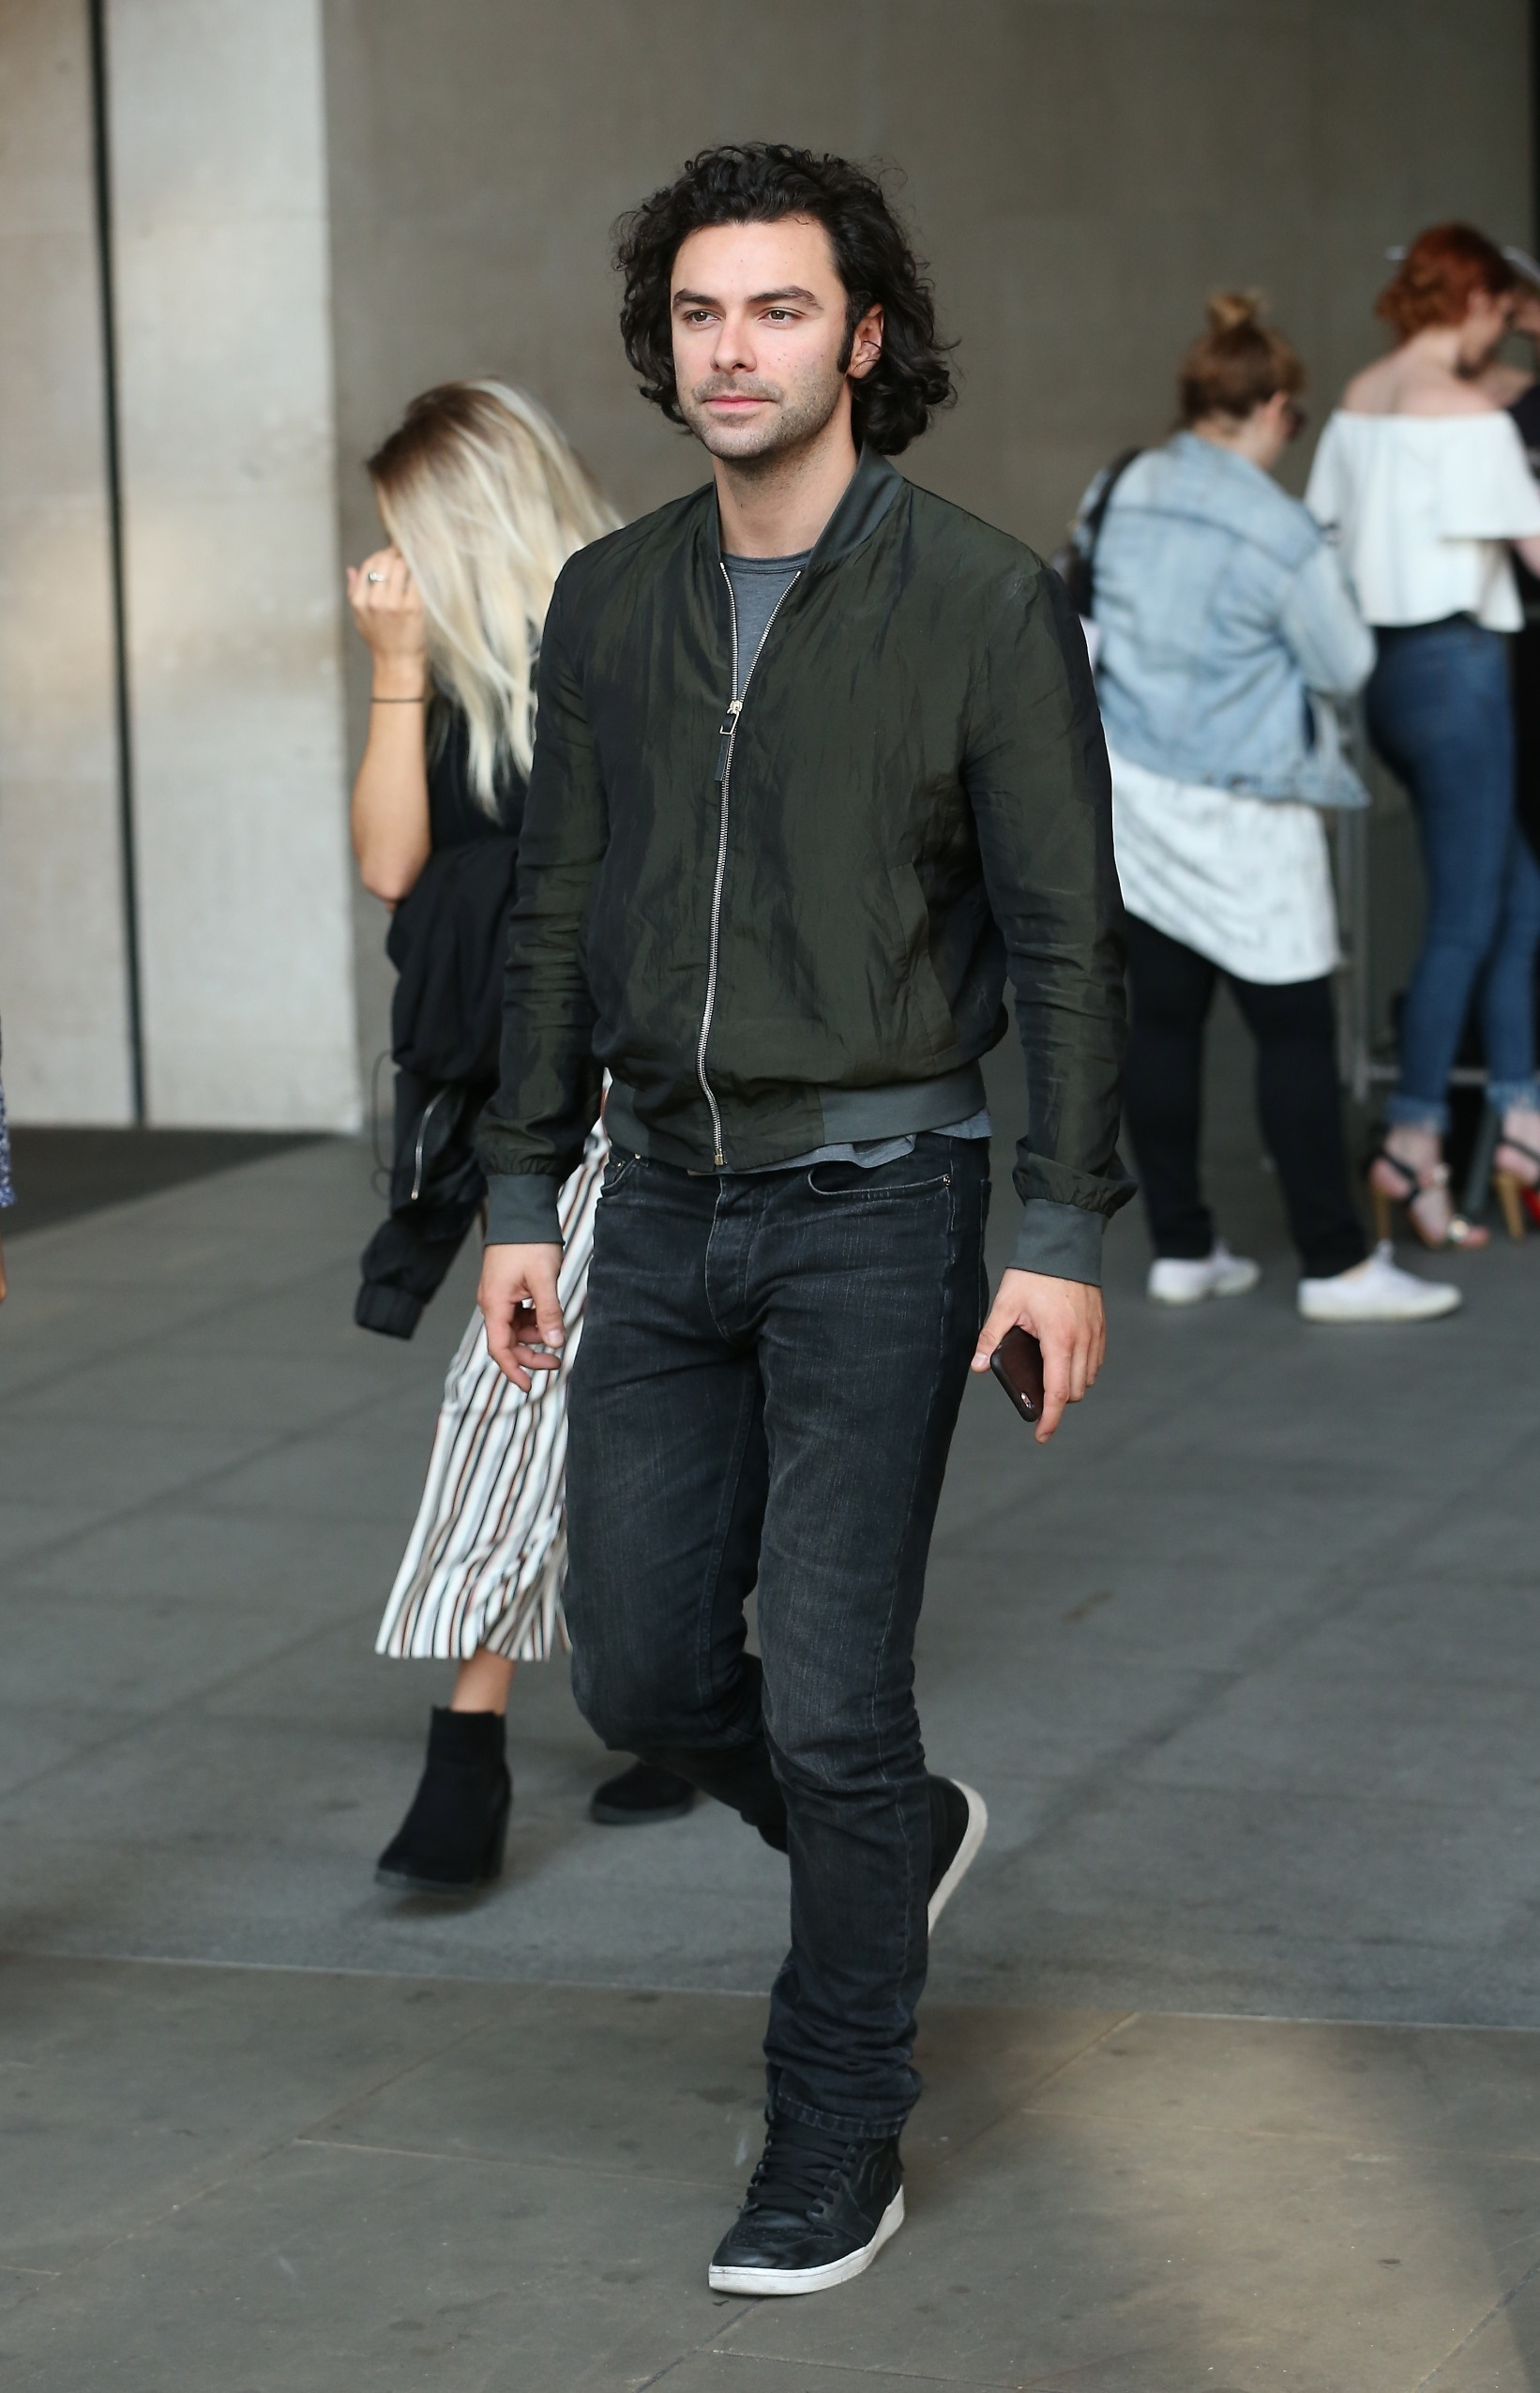 Picture Shows: Aiden Turner August 30, 2012 Stars are seen leaving the BBC studios in London, England, UK. The stars of the BBC drama 'Poldark' spent time with fans before making their way out. Non-Exclusive WORLDWIDE RIGHTS Pictures by : FameFlynet UK © 2016 Tel : +44 (0)20 3551 5049 Email : info@fameflynet.uk.com